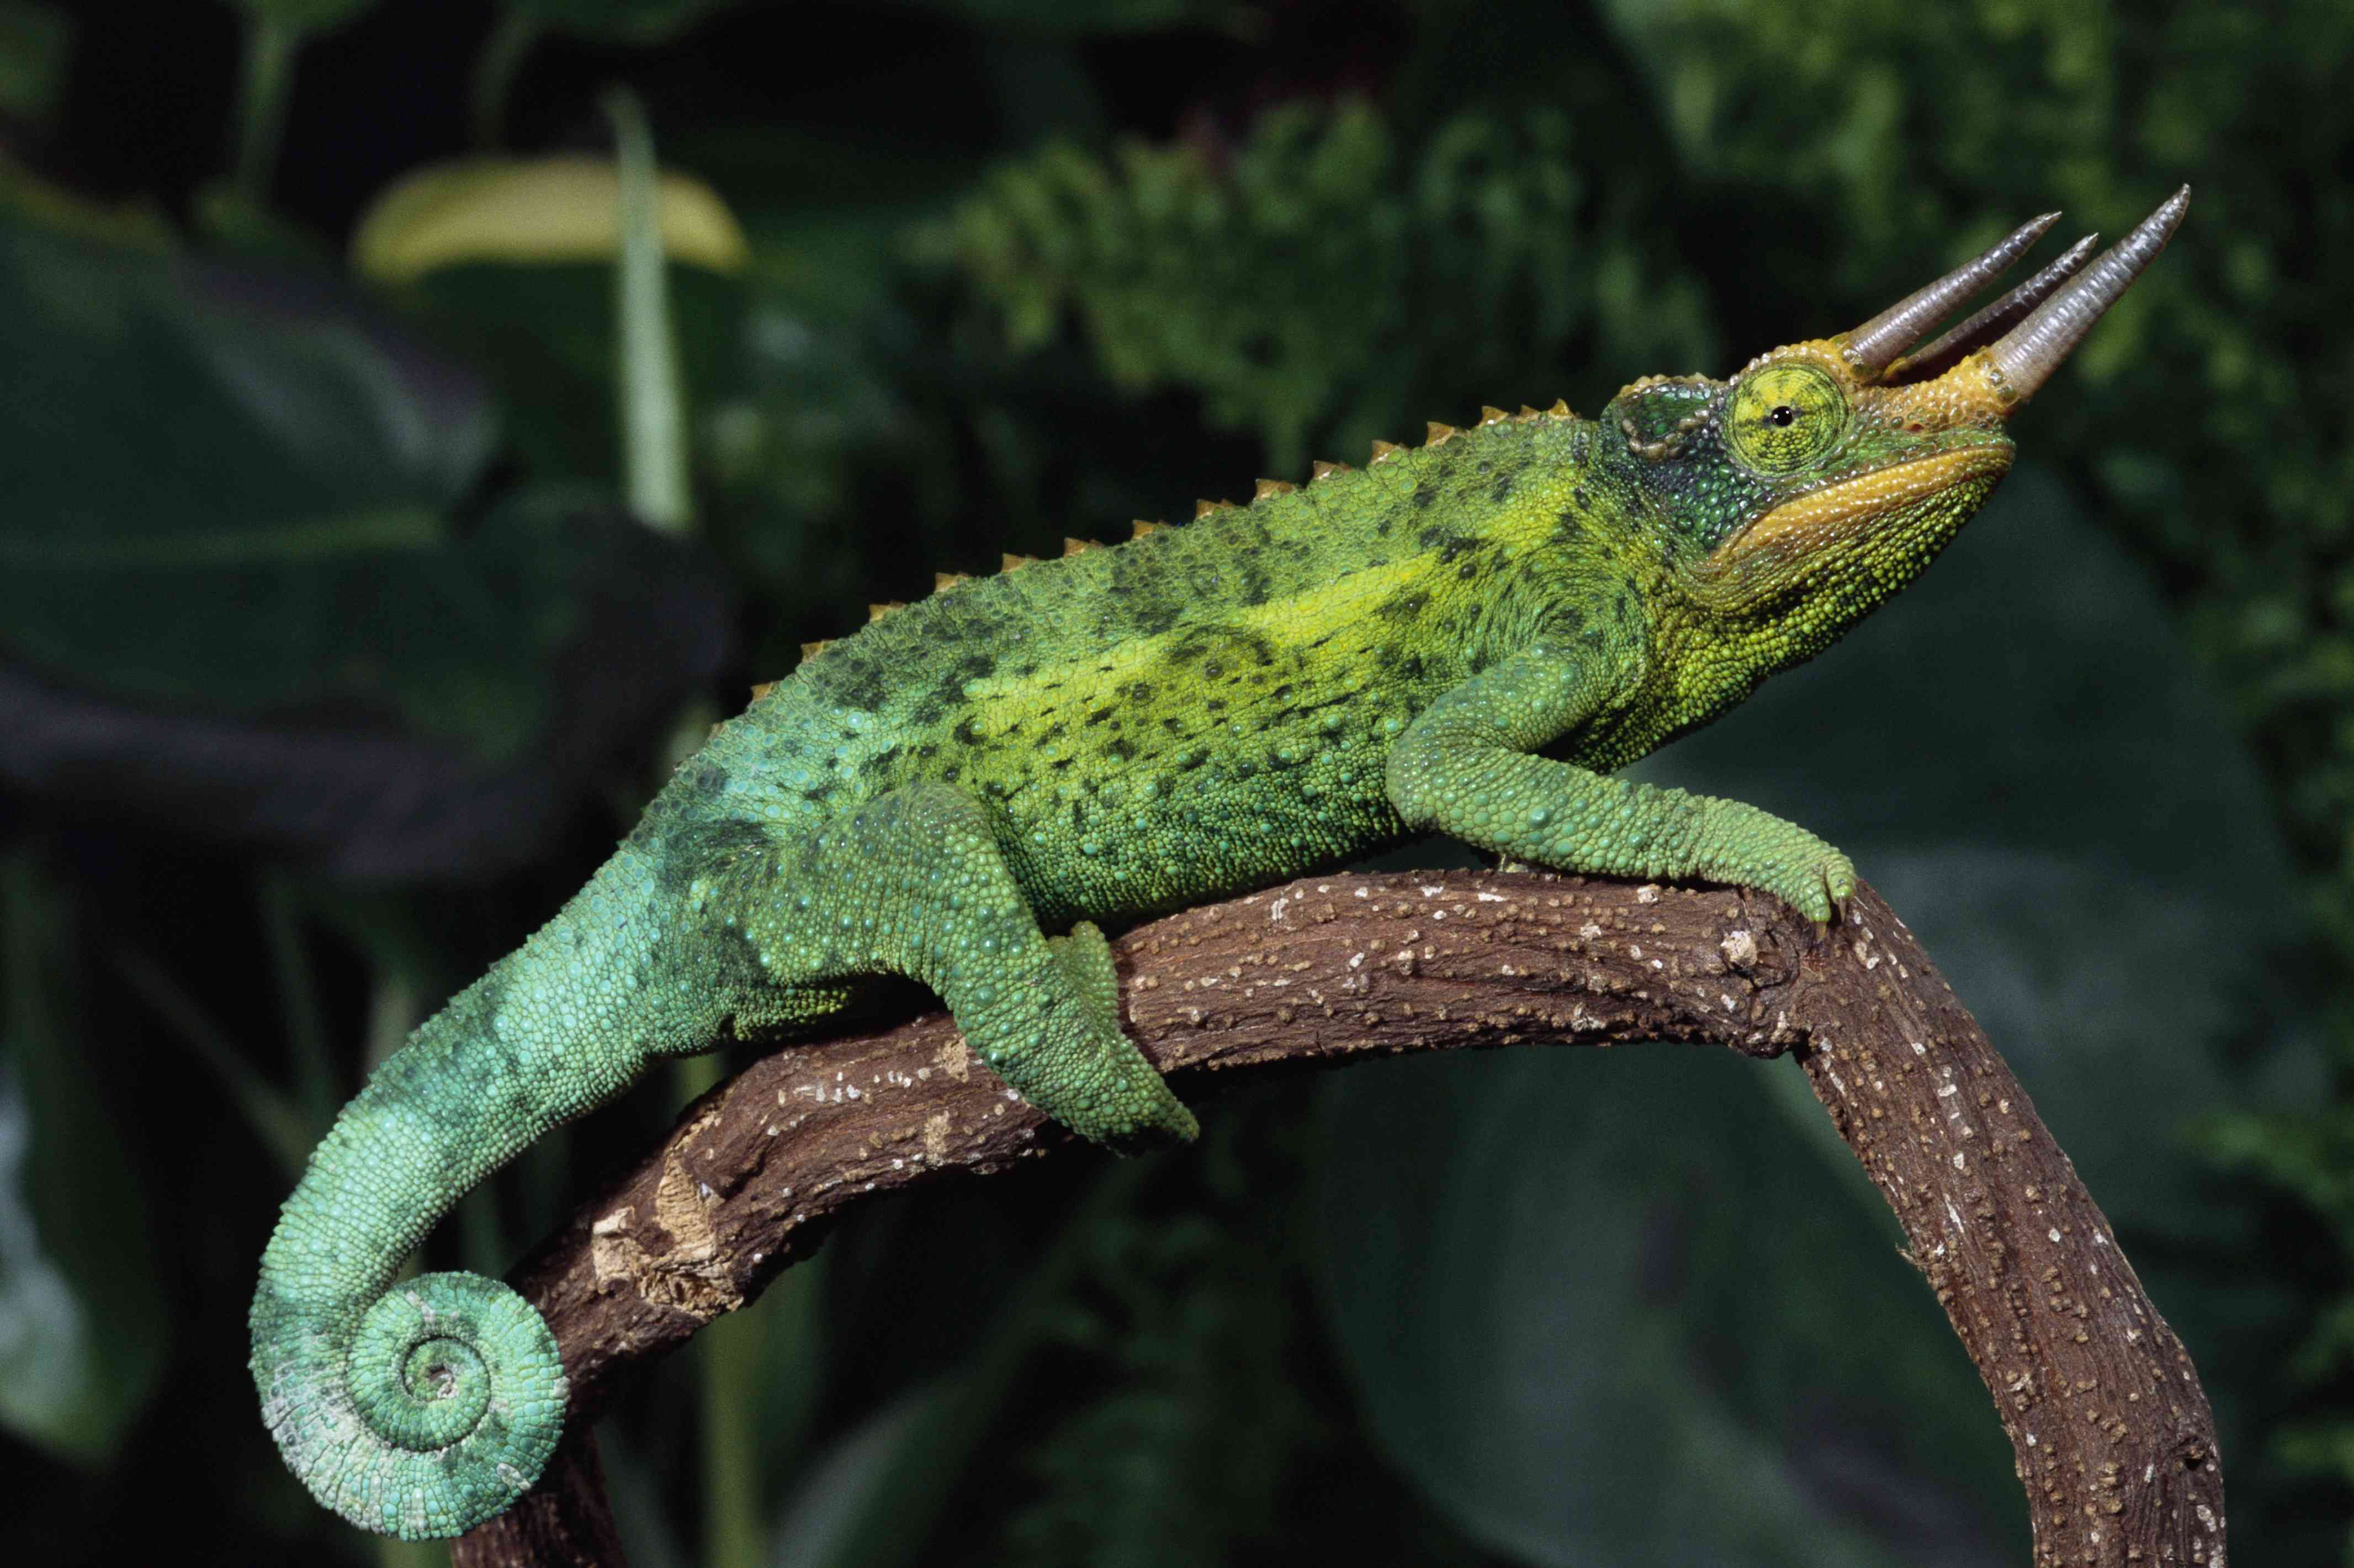 Jackson's Chameleon with curled tail on branch